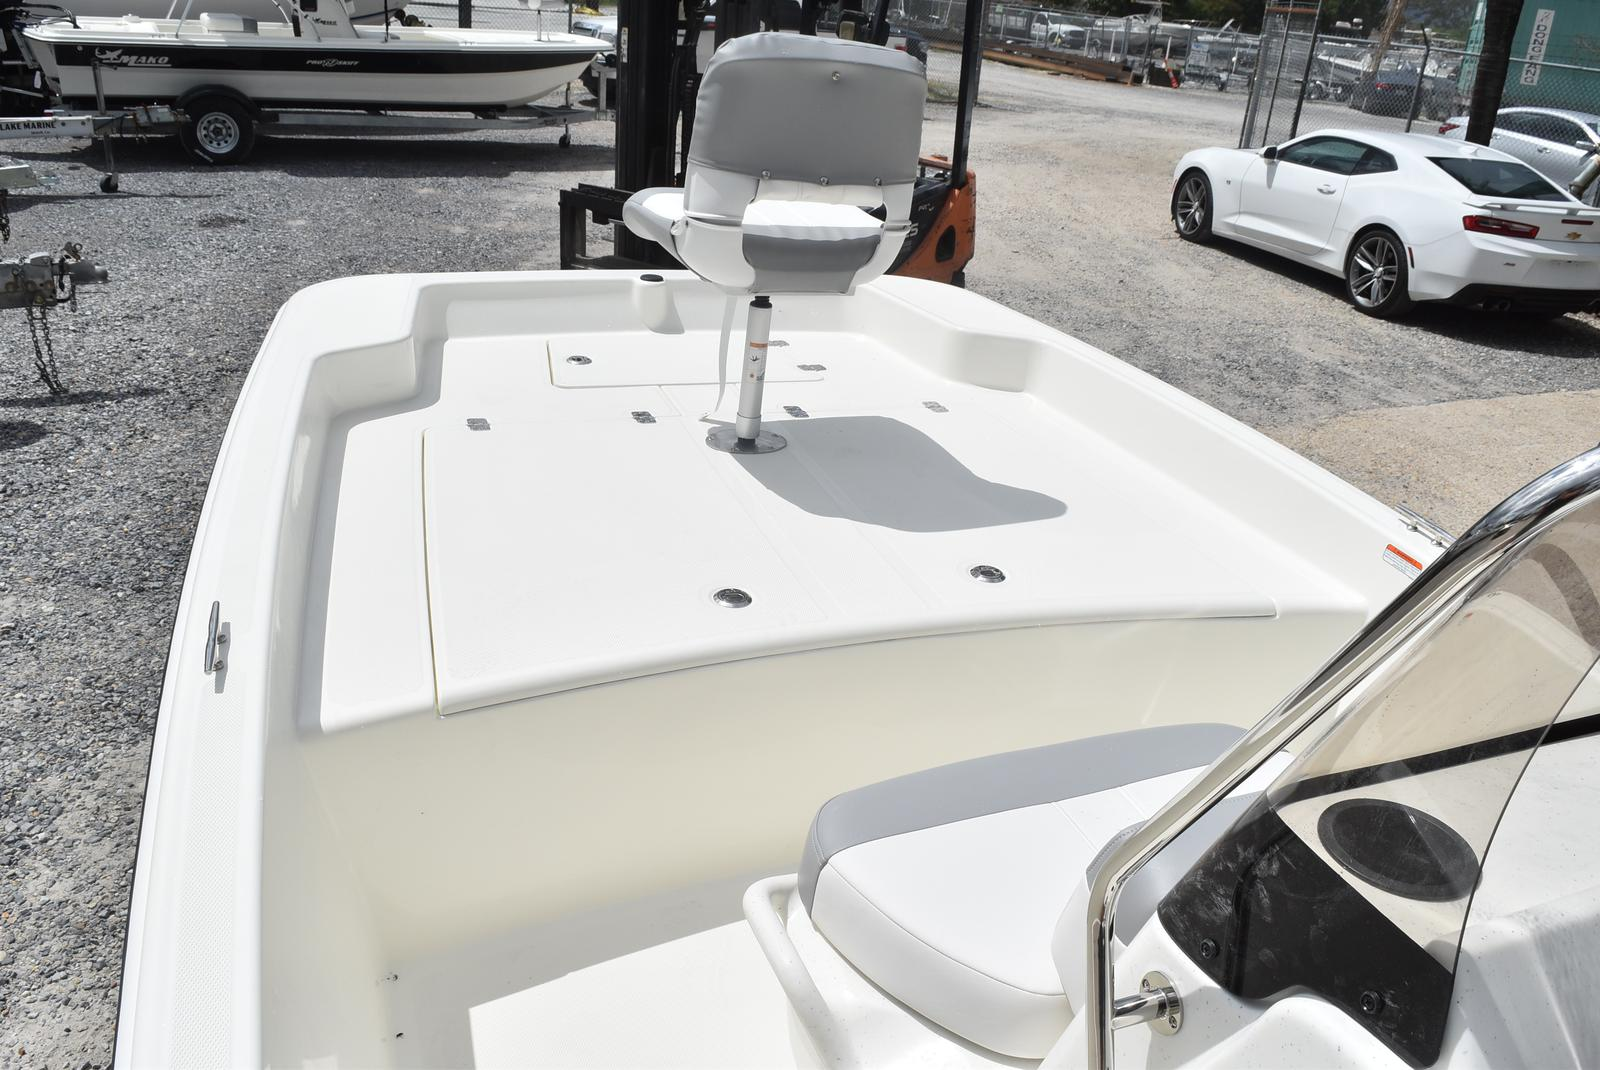 2020 Mako boat for sale, model of the boat is Pro Skiff 17, 75 ELPT & Image # 431 of 702